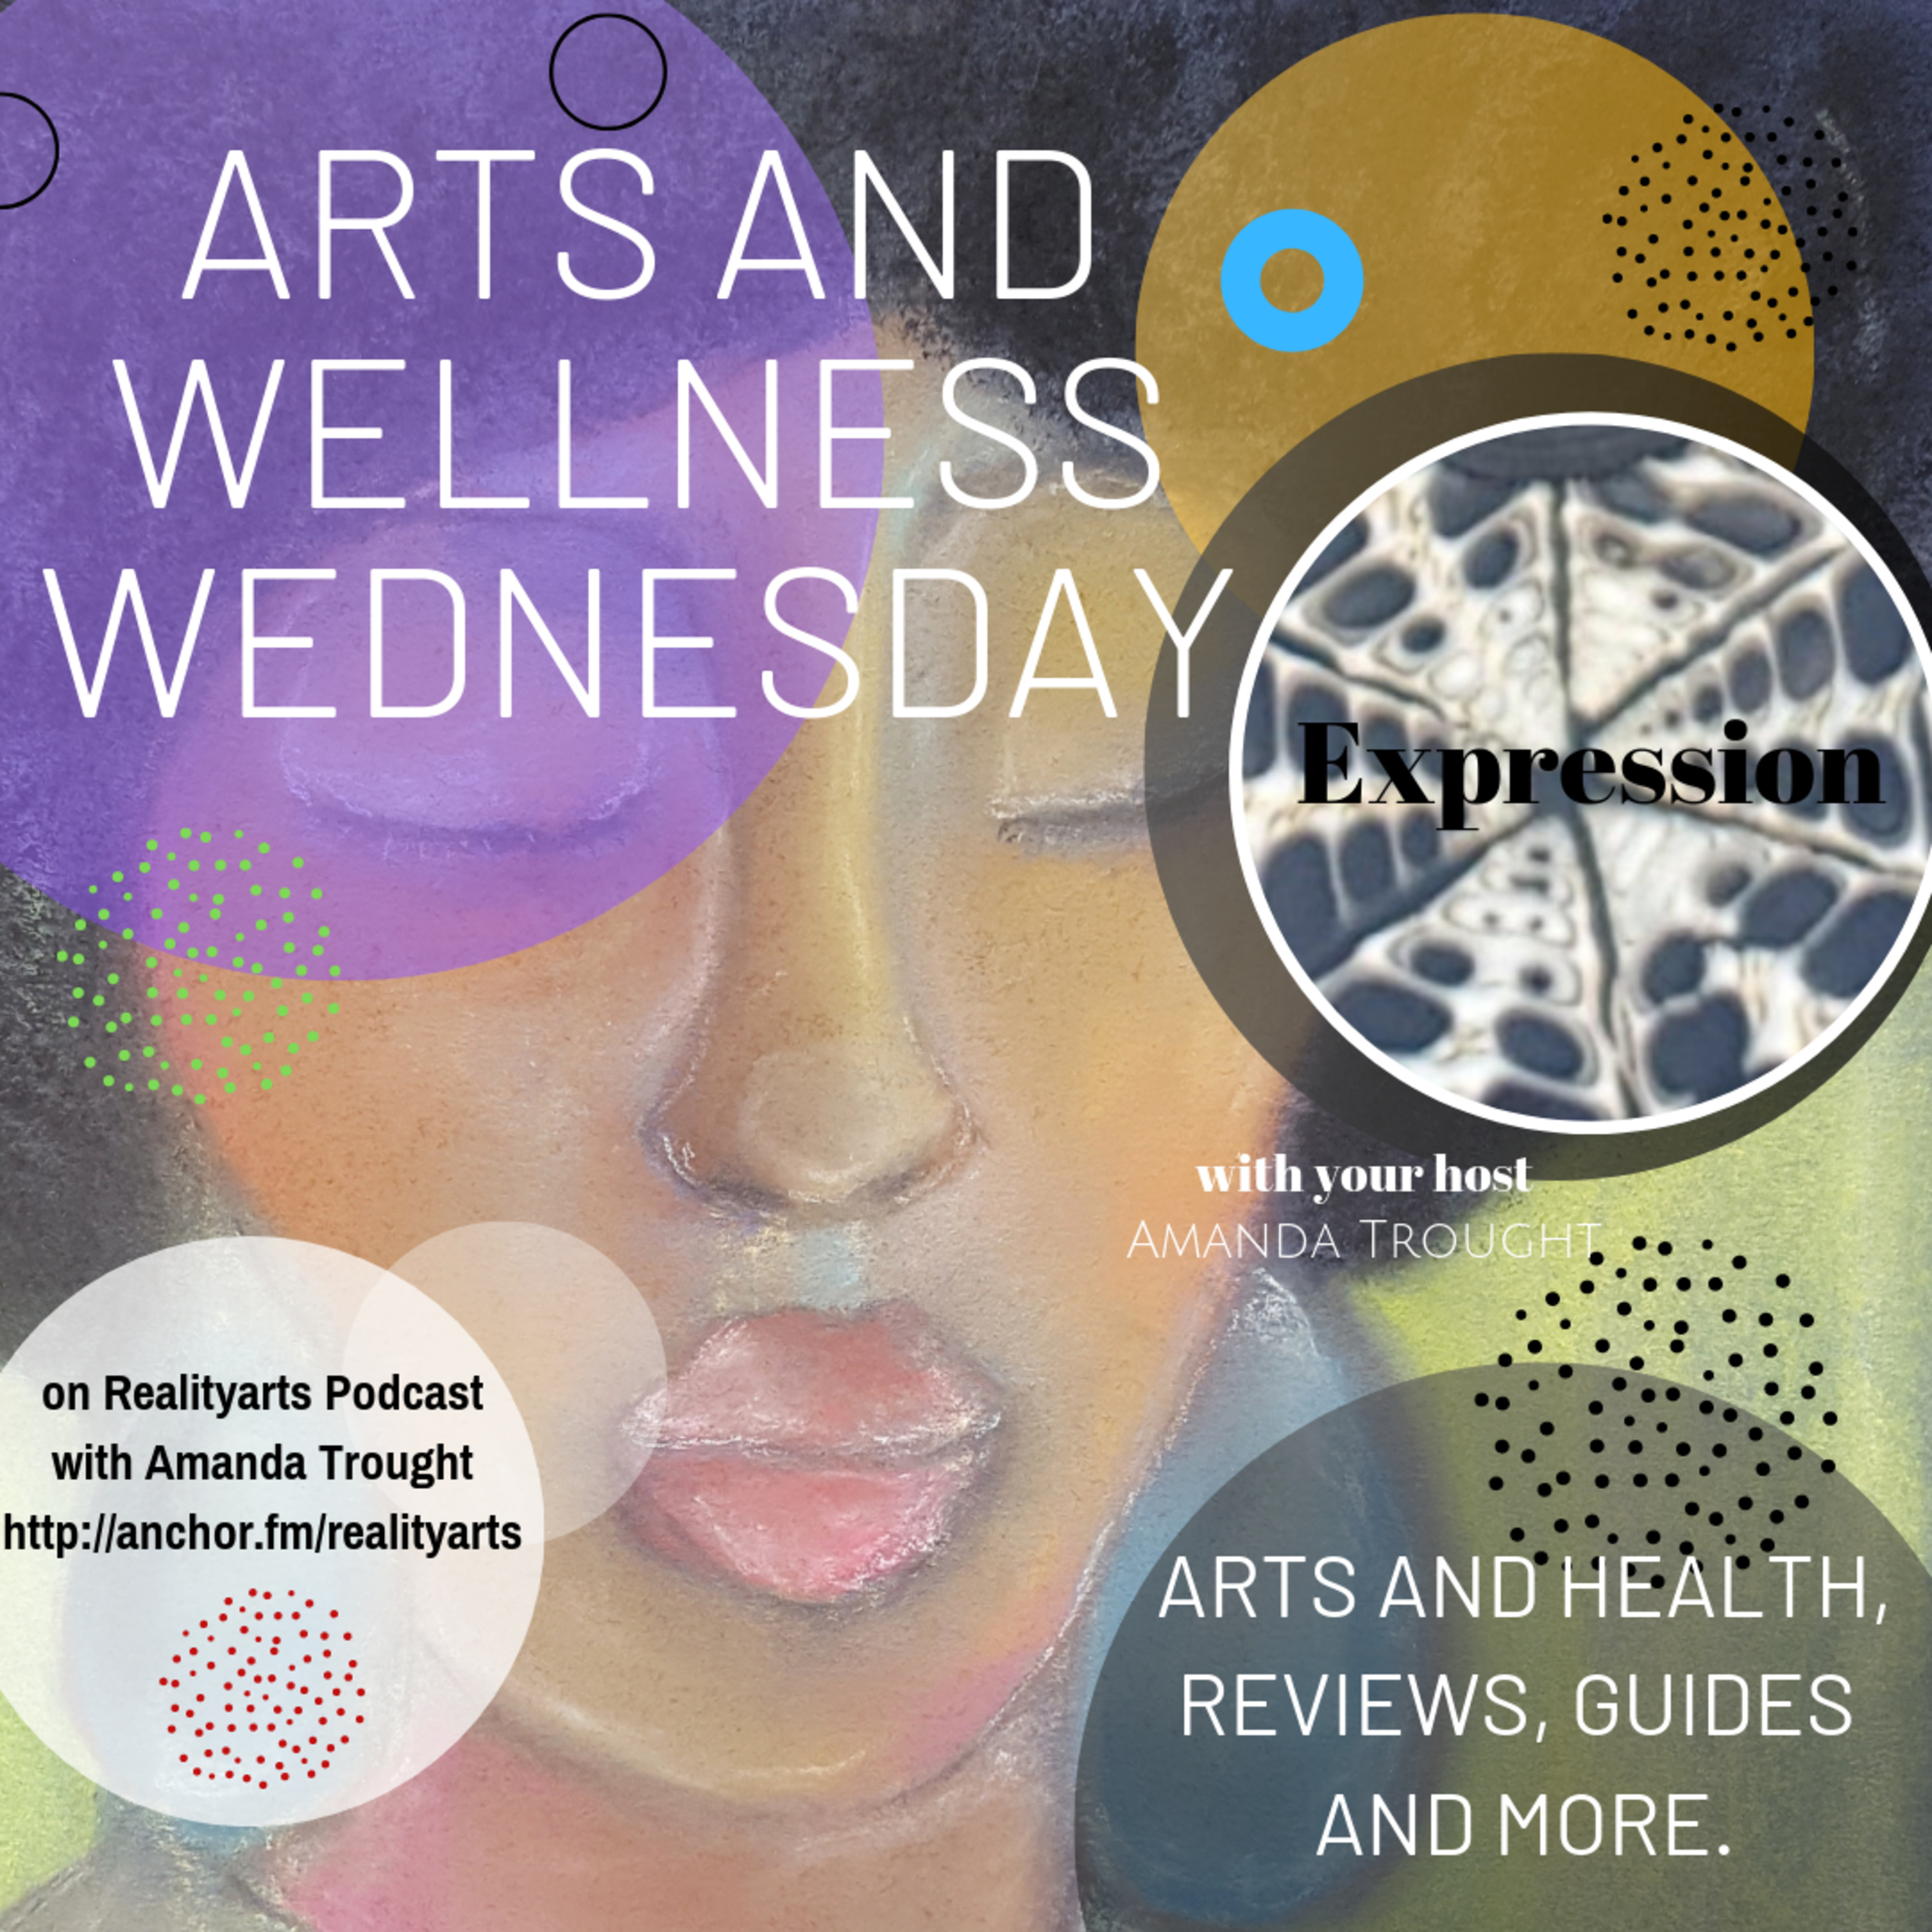 Arts and Wellness Wednesday - Expression